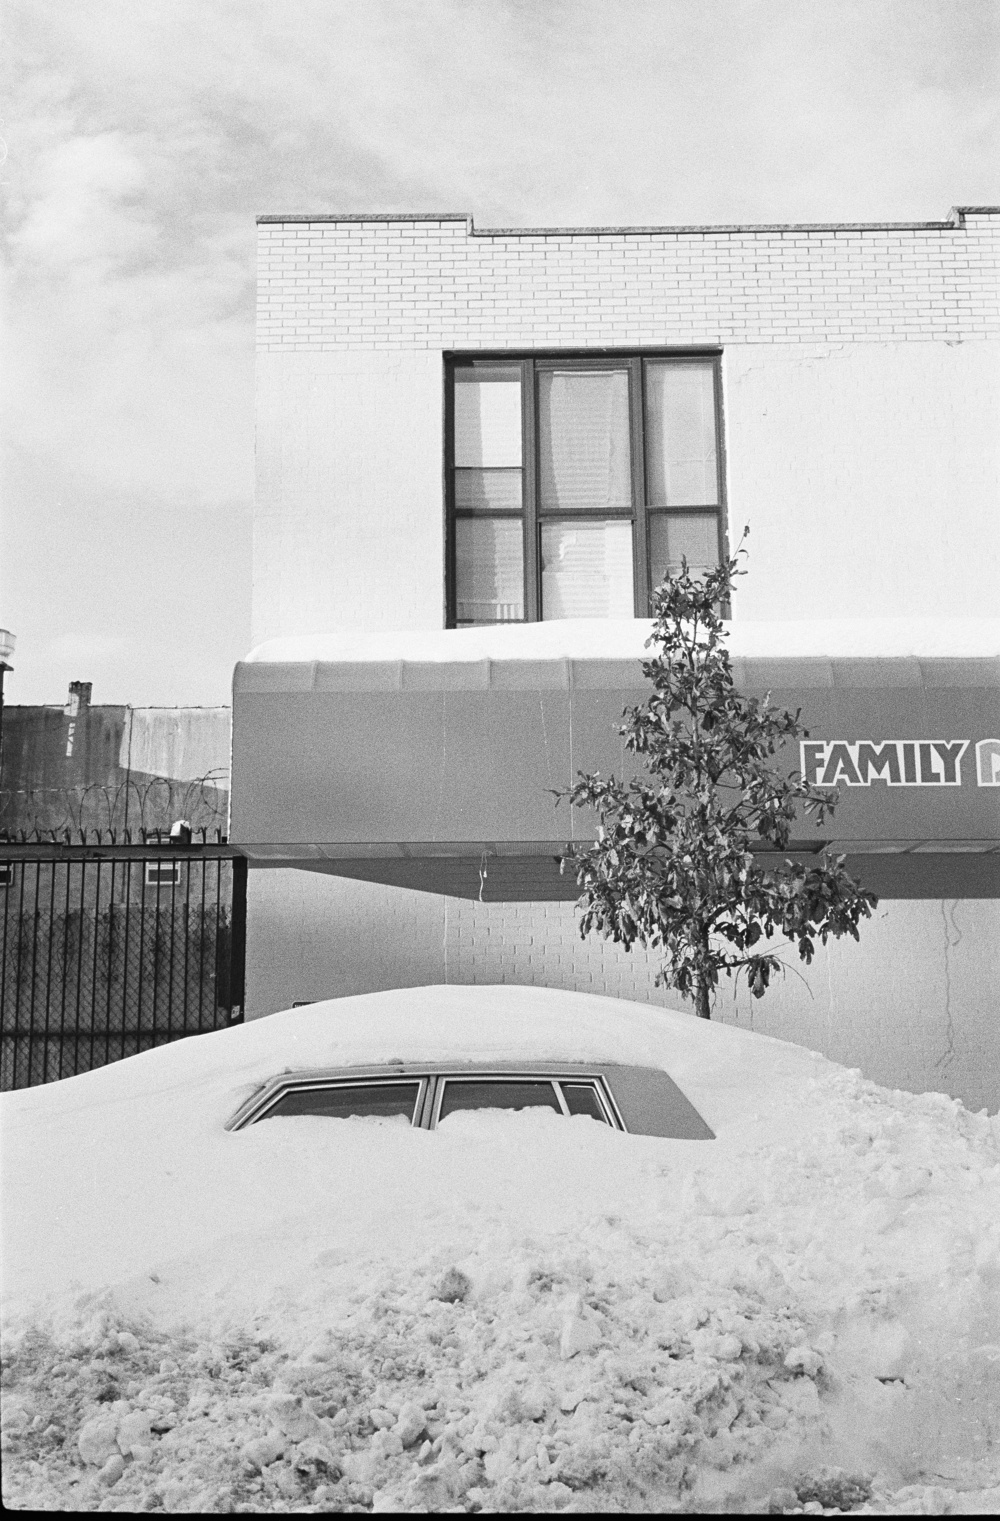 Family DollarCarWindow:SnowDrift copy.jpg